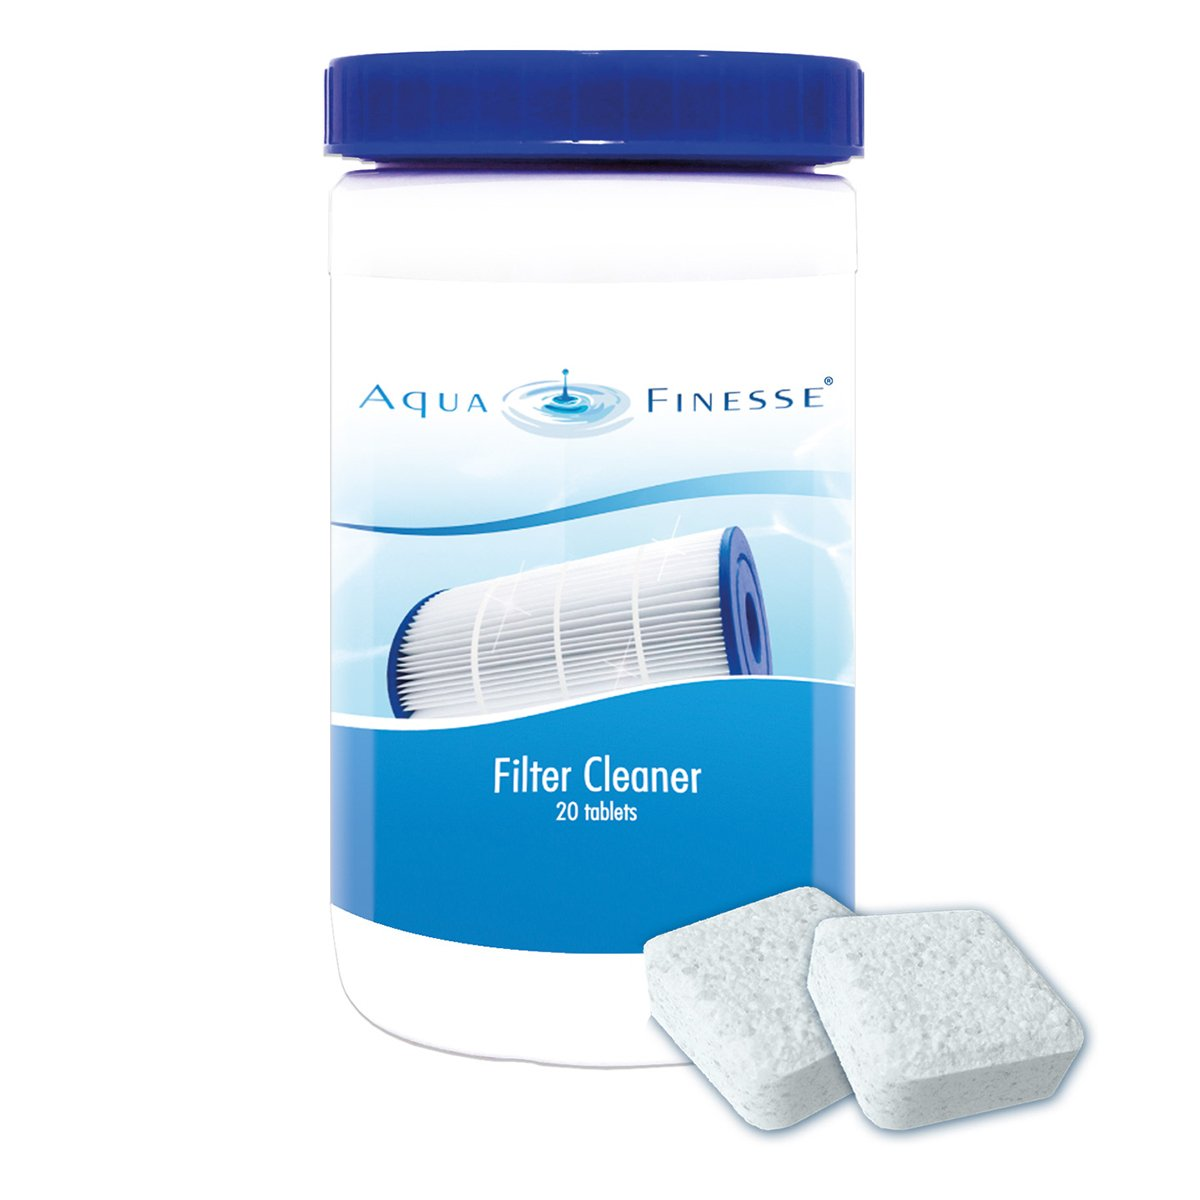 AquaFinesse Spa Filter Cleaner Bain et Confort